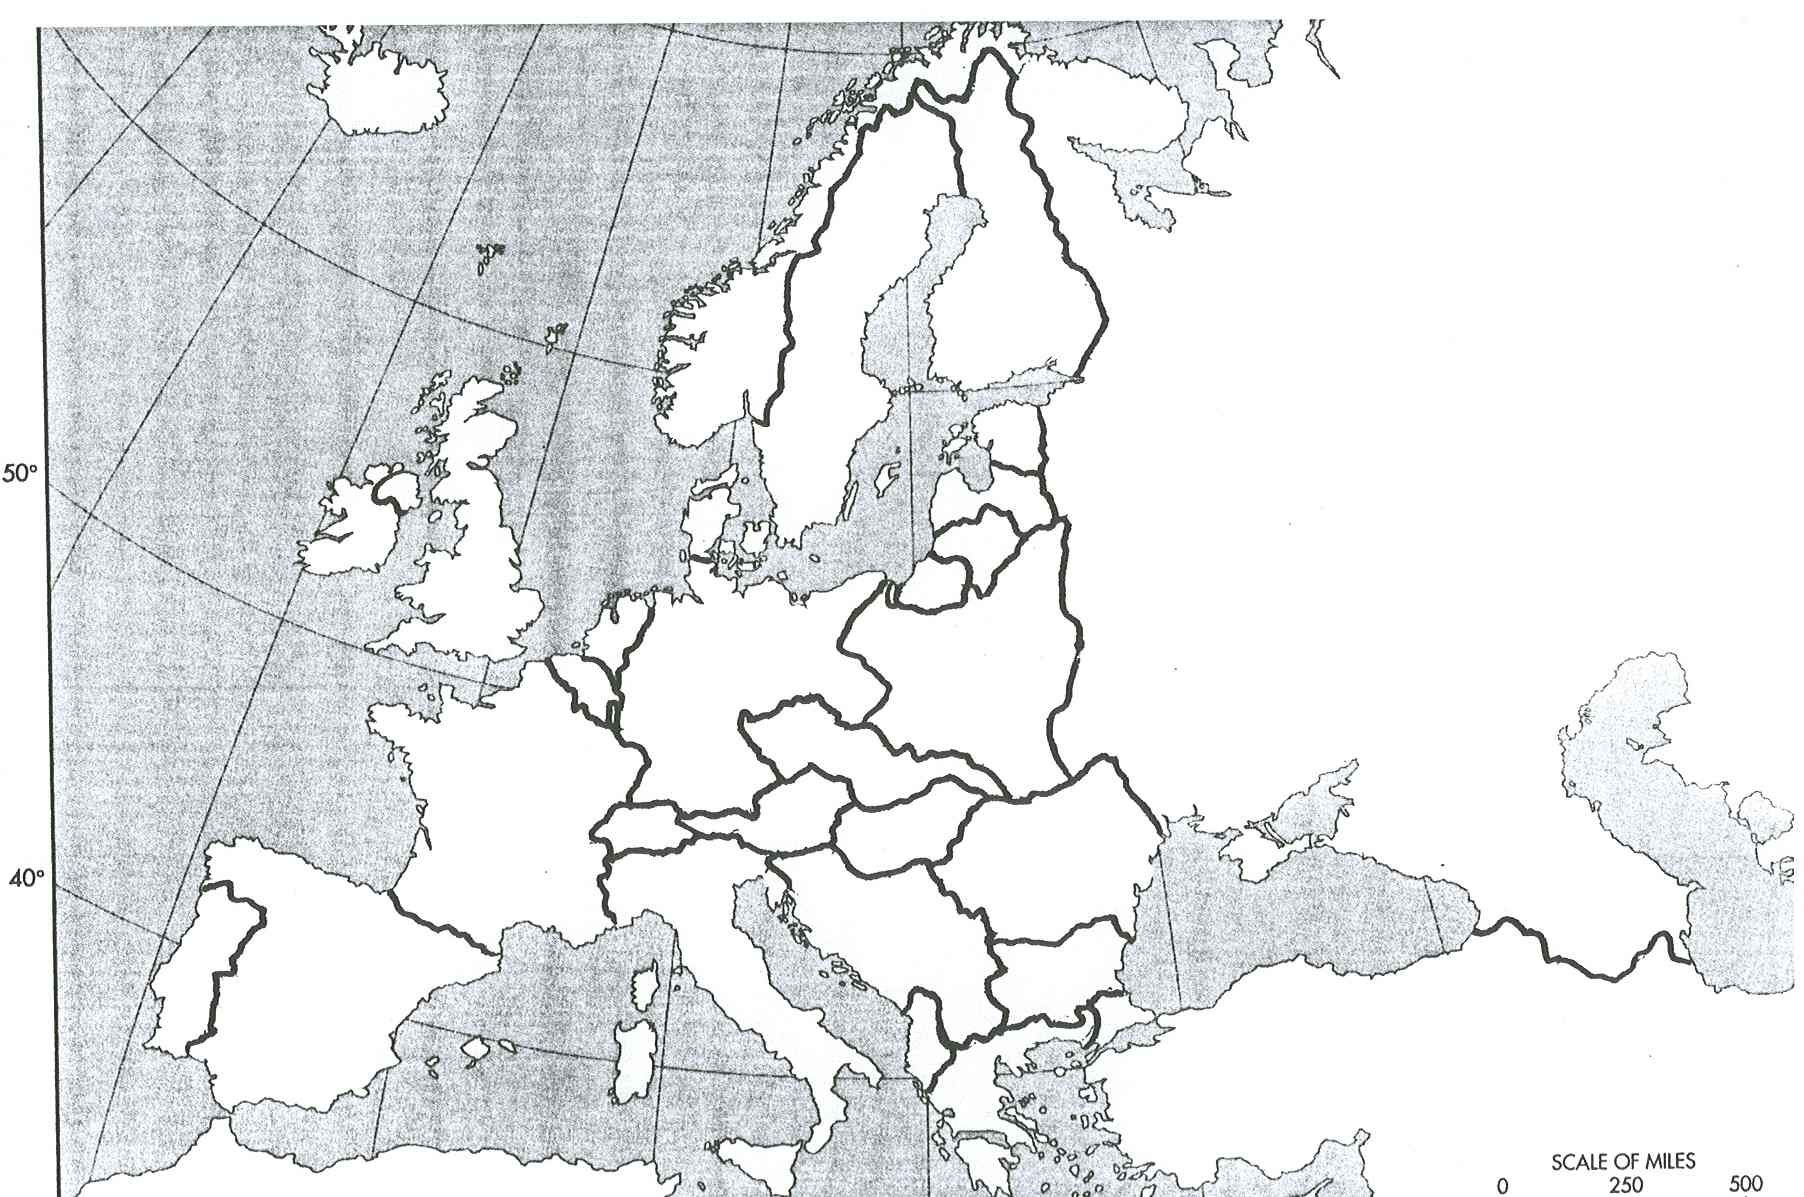 Blank Map Of Europe After World War II Here Are The Topic - Europe blank map